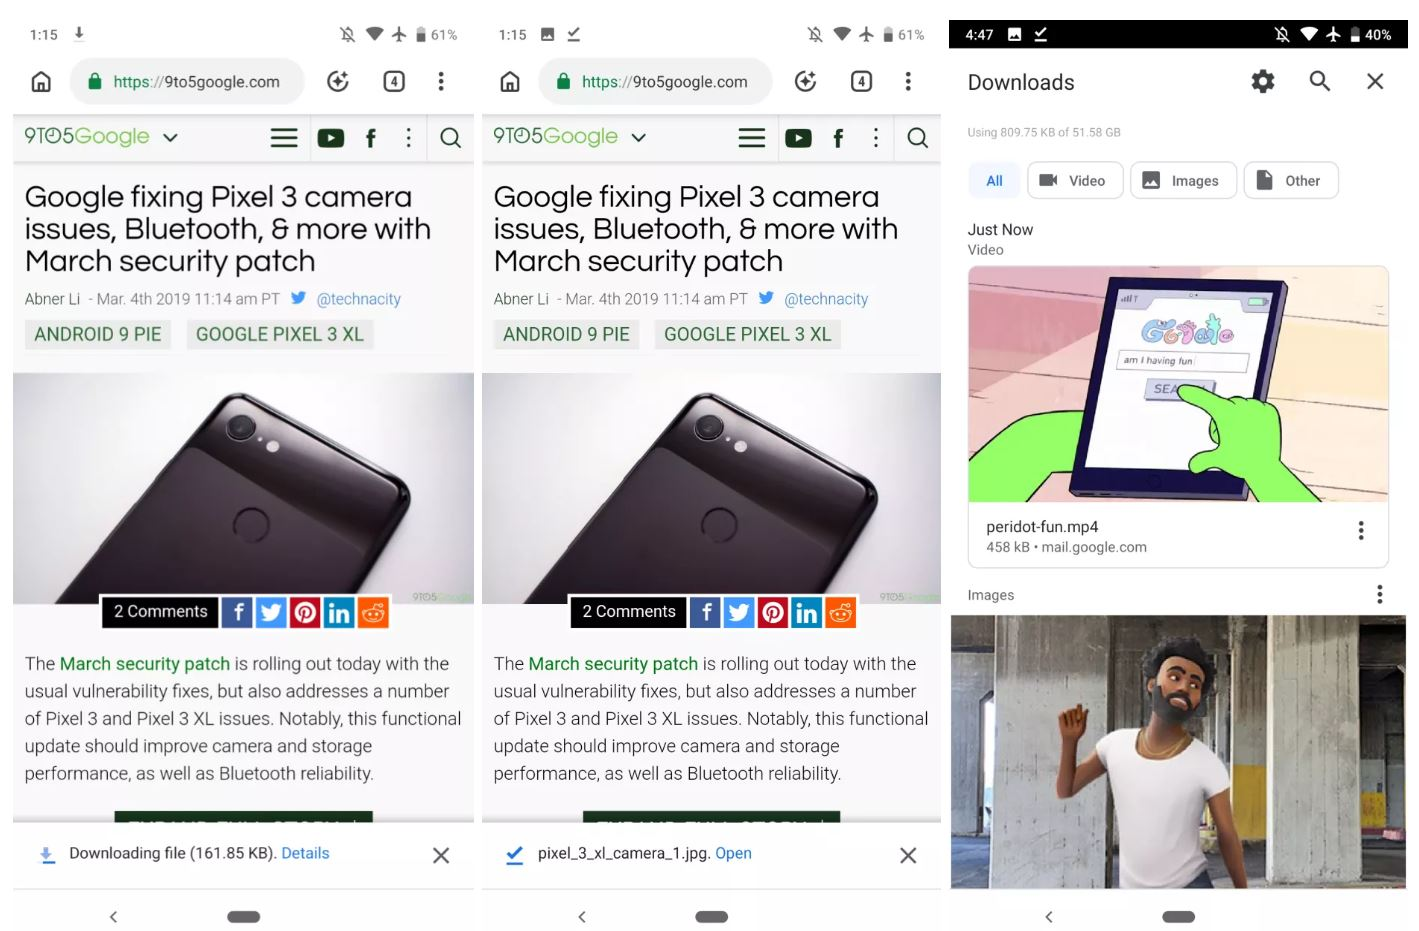 chrome android download manager